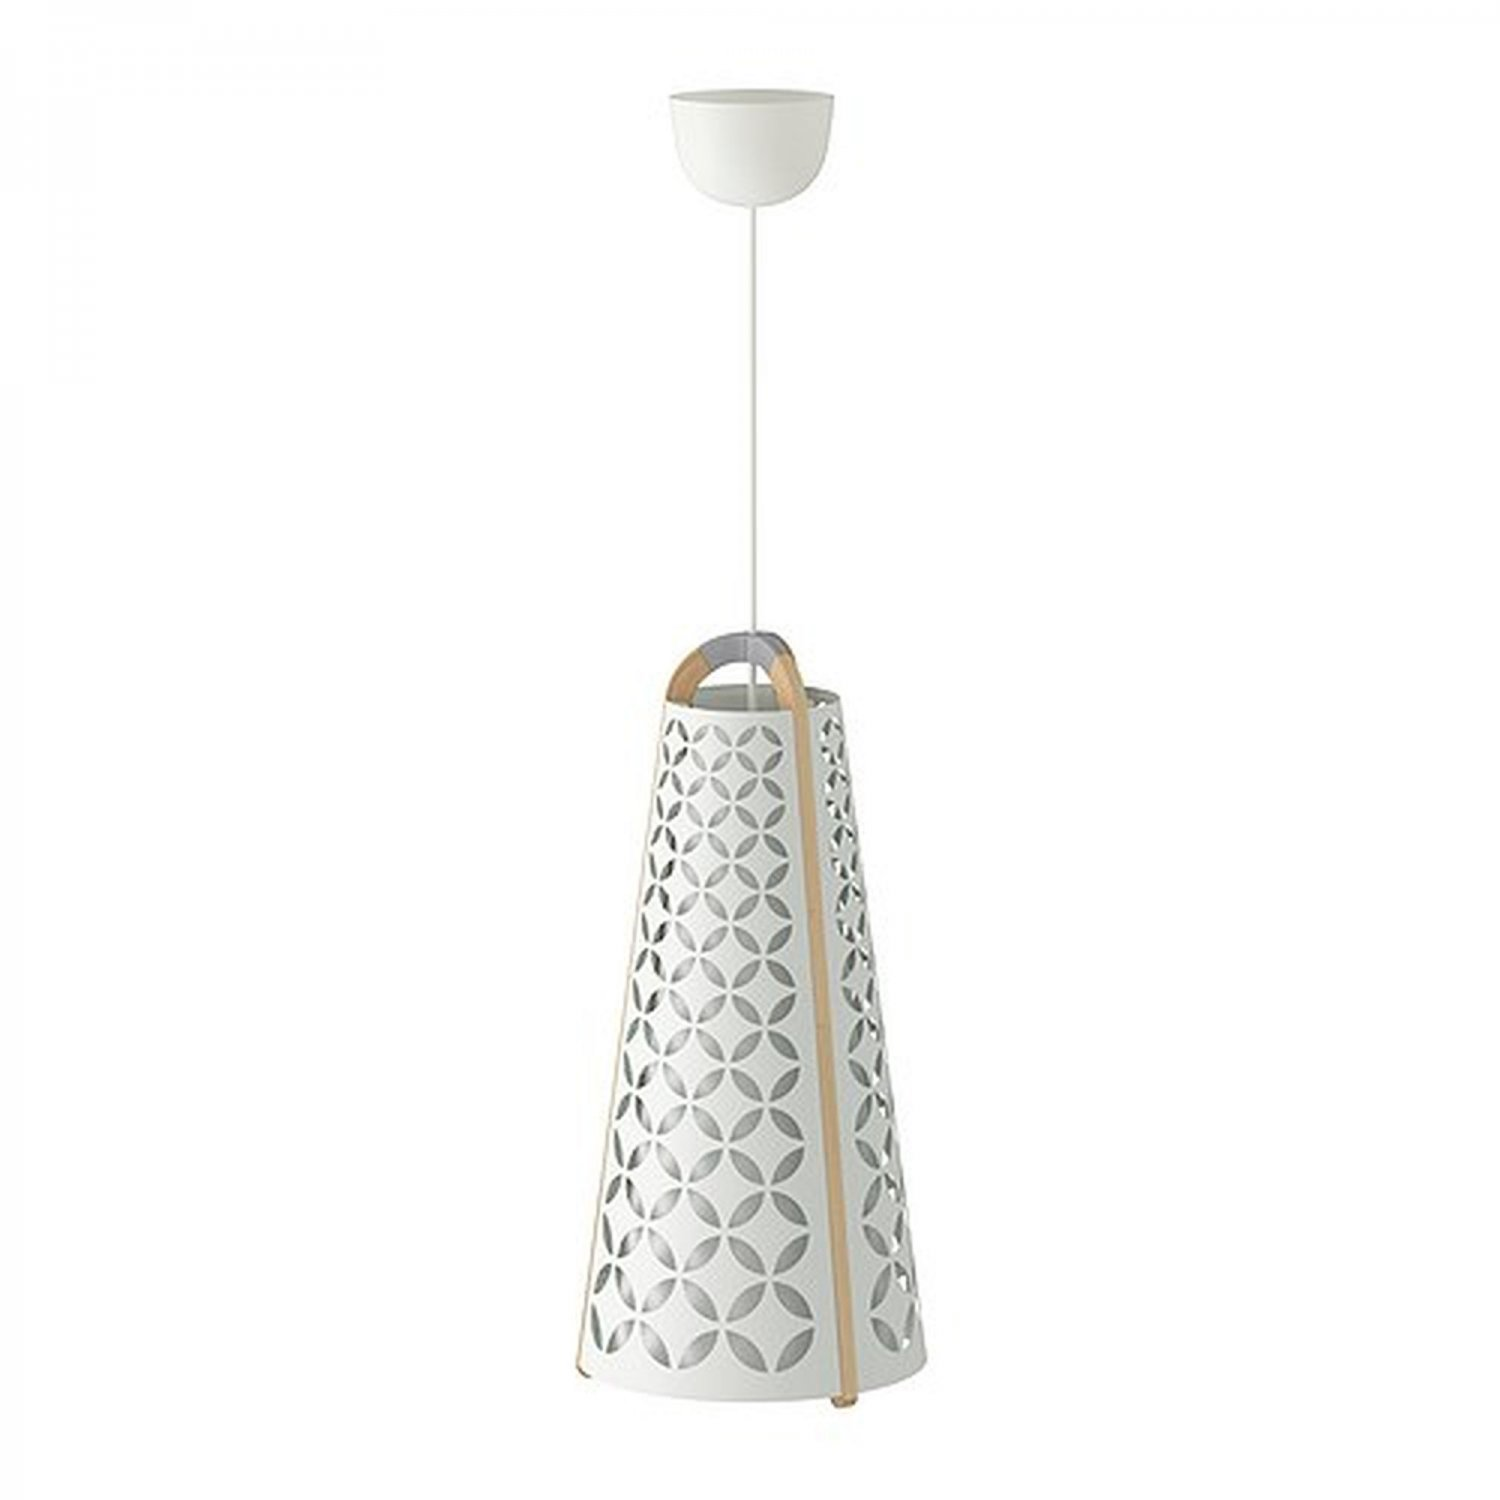 Ikea Light Pendant Ikea Torna Pendant Lamp Ceiling Light Modern White And